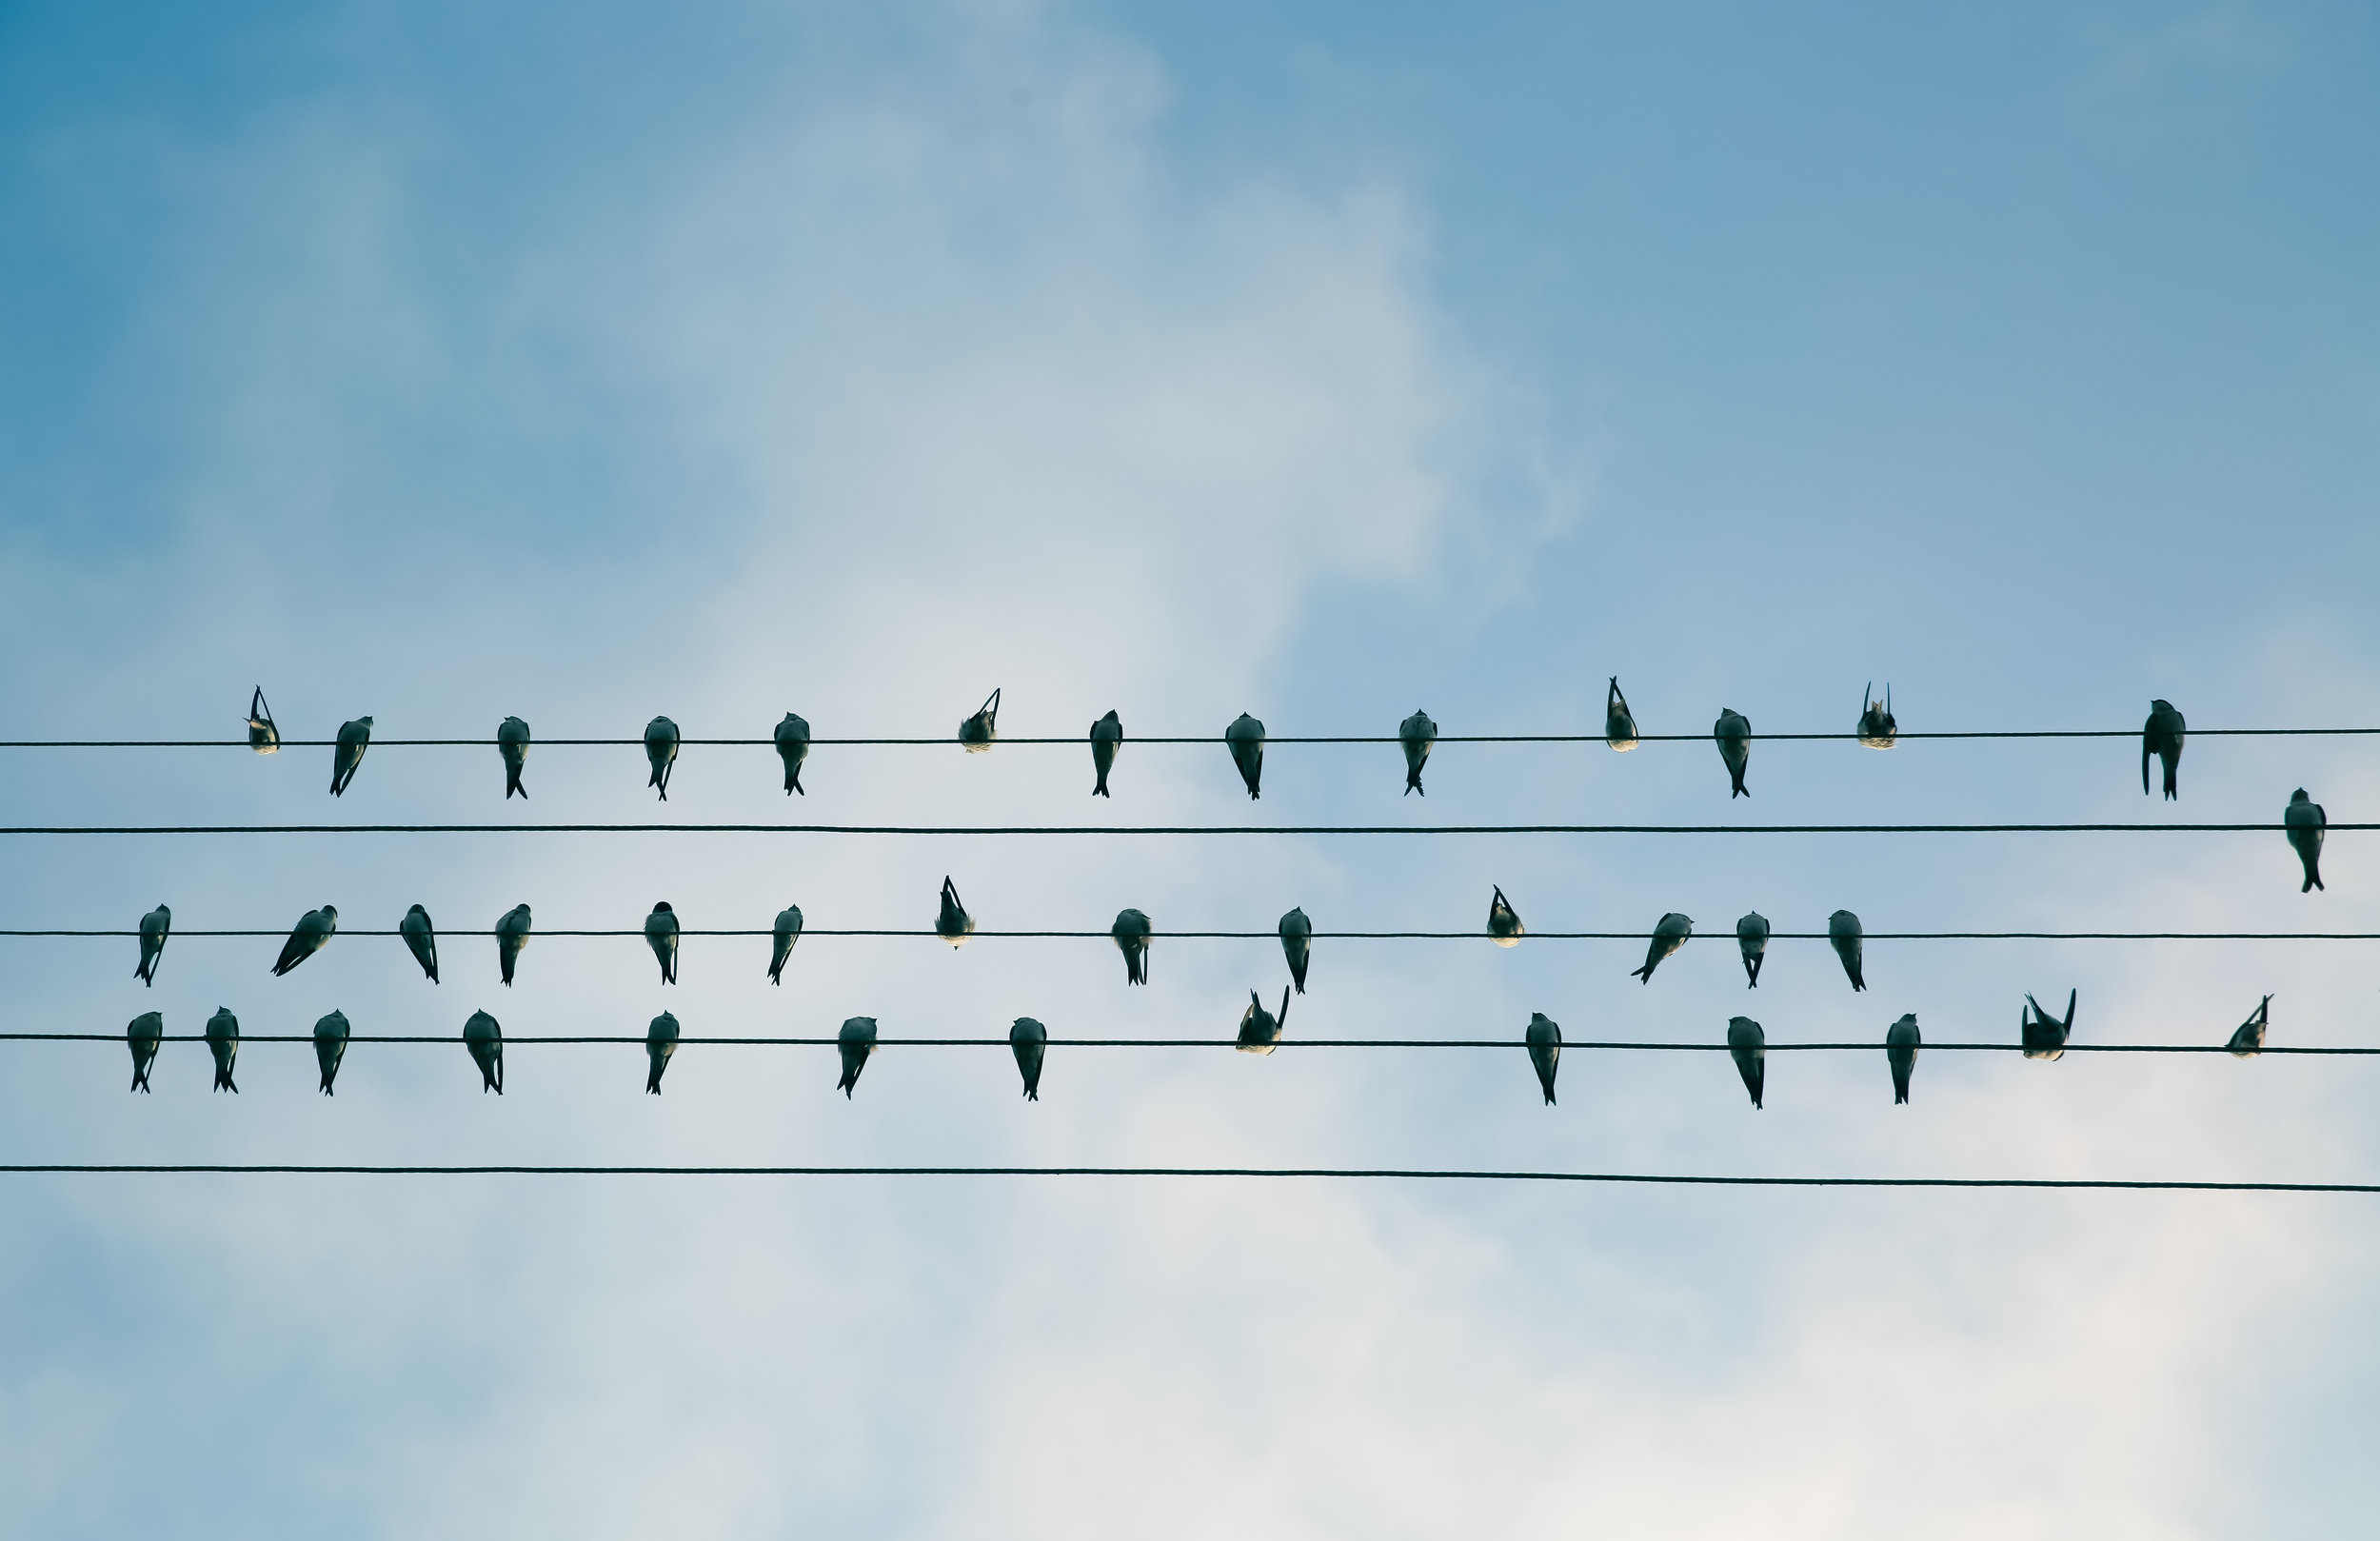 a collection of birds sitting on wires symbolising an ecosystem